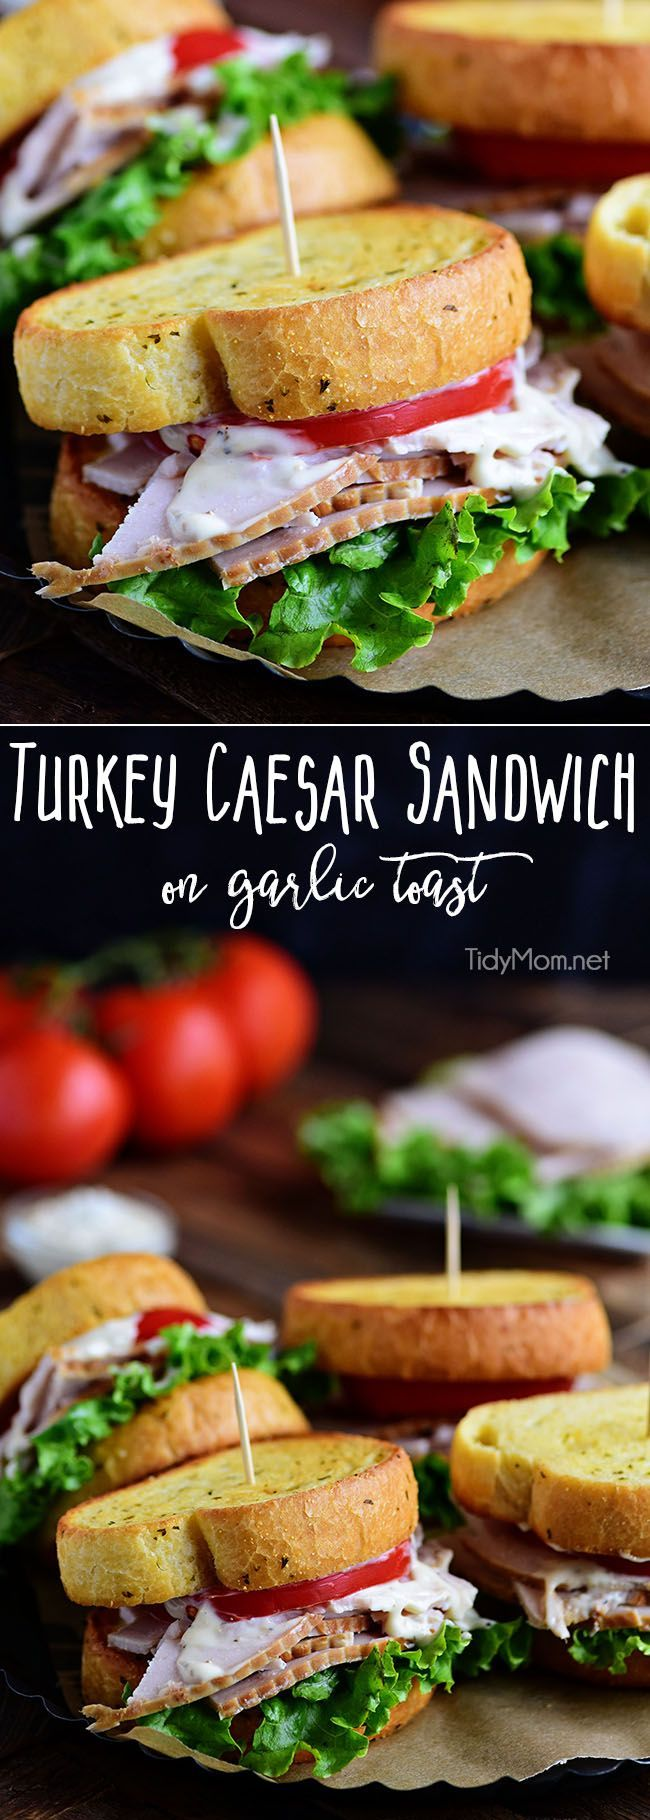 Texas garlic toast turns an ordinary Turkey Caesar Sandwich into something special. It's the perfect way to use up leftover Thanksgiving turkey or enjoy any day with deli sliced turkey! Print recipe at TidyMom.net via